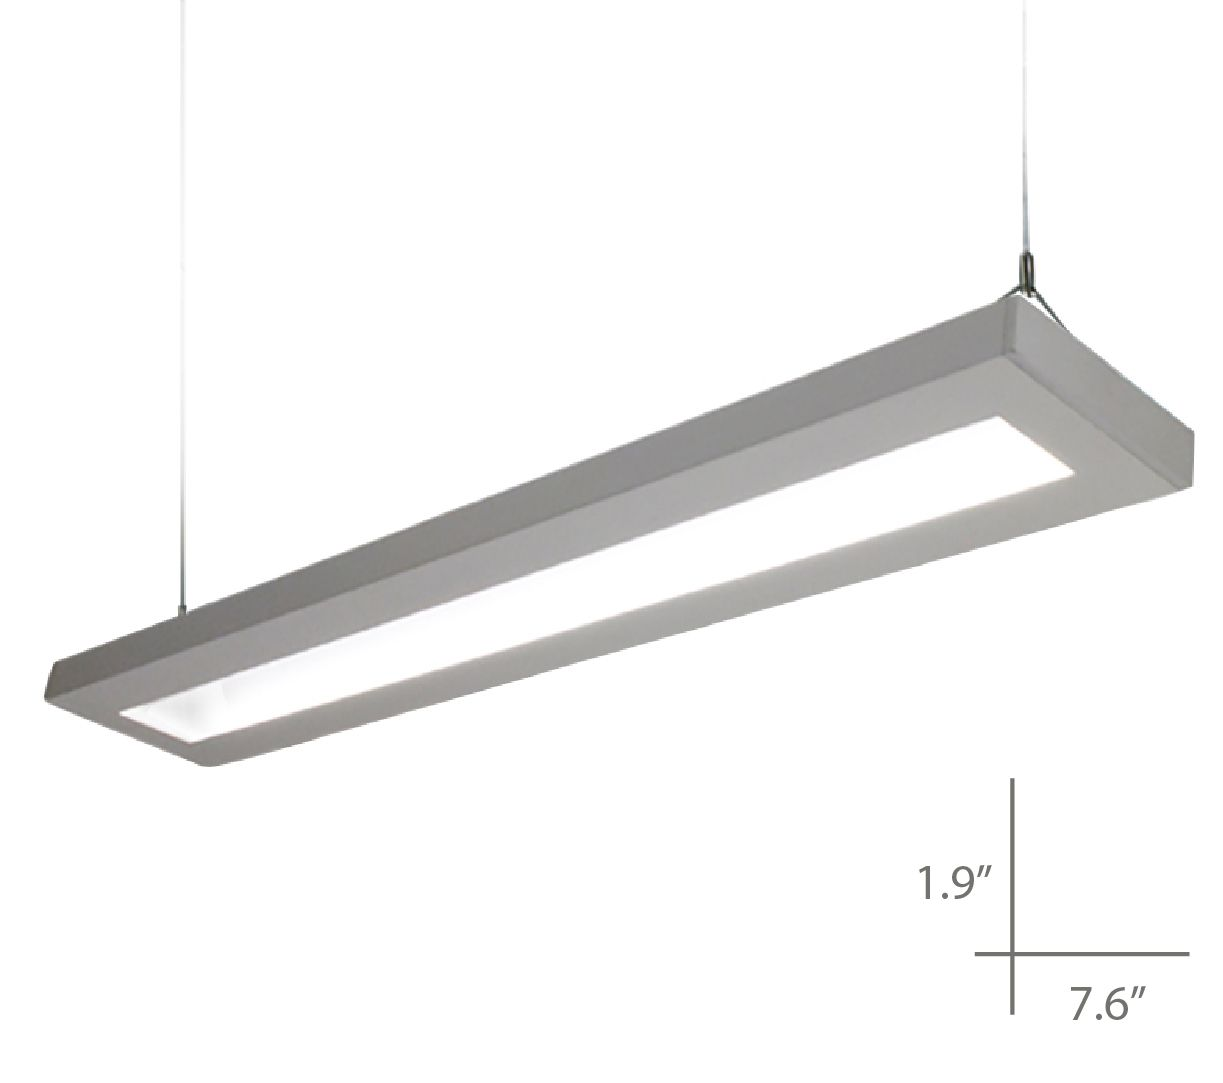 Direct indirect lighting fixtures light fixtures alcon lighting 12113 8 nlp architectural led foot linear suspended arubaitofo Choice Image